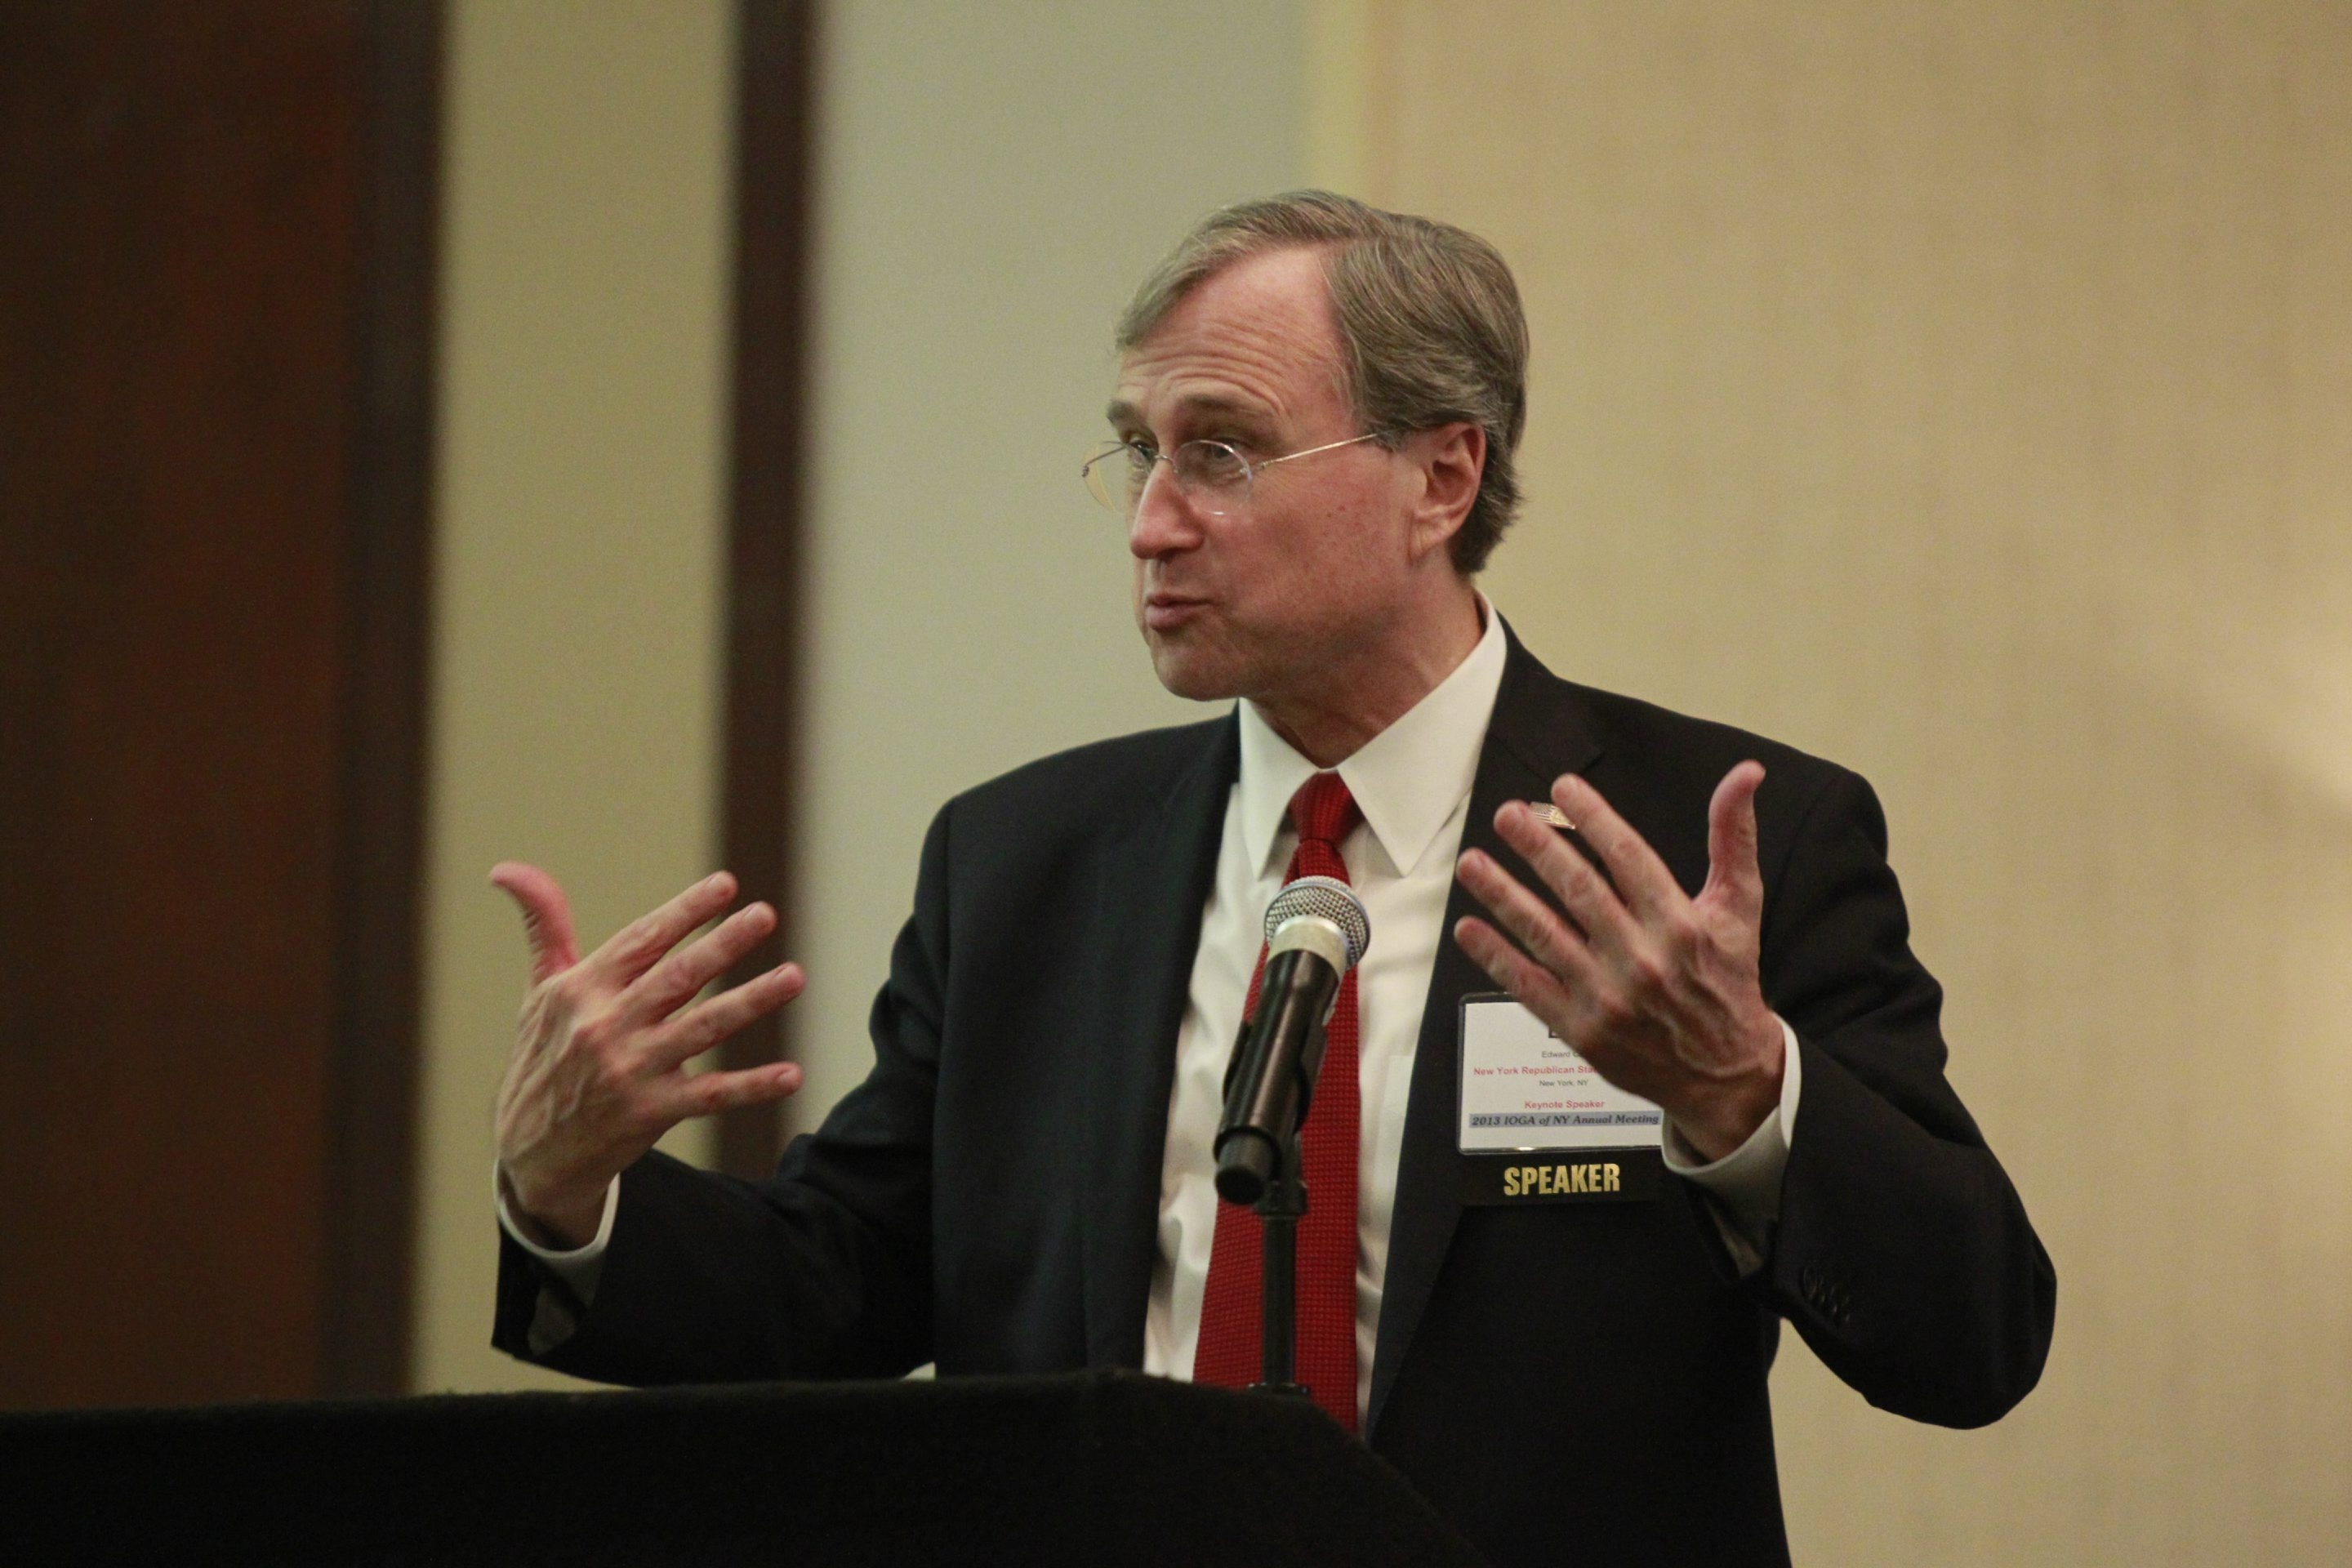 State Republican Chairman Edward Cox speaks to the annual meeting of the Independent Oil and Gas Association of New York Wednesday, criticizing the moratorium on hydraulic fracturing.